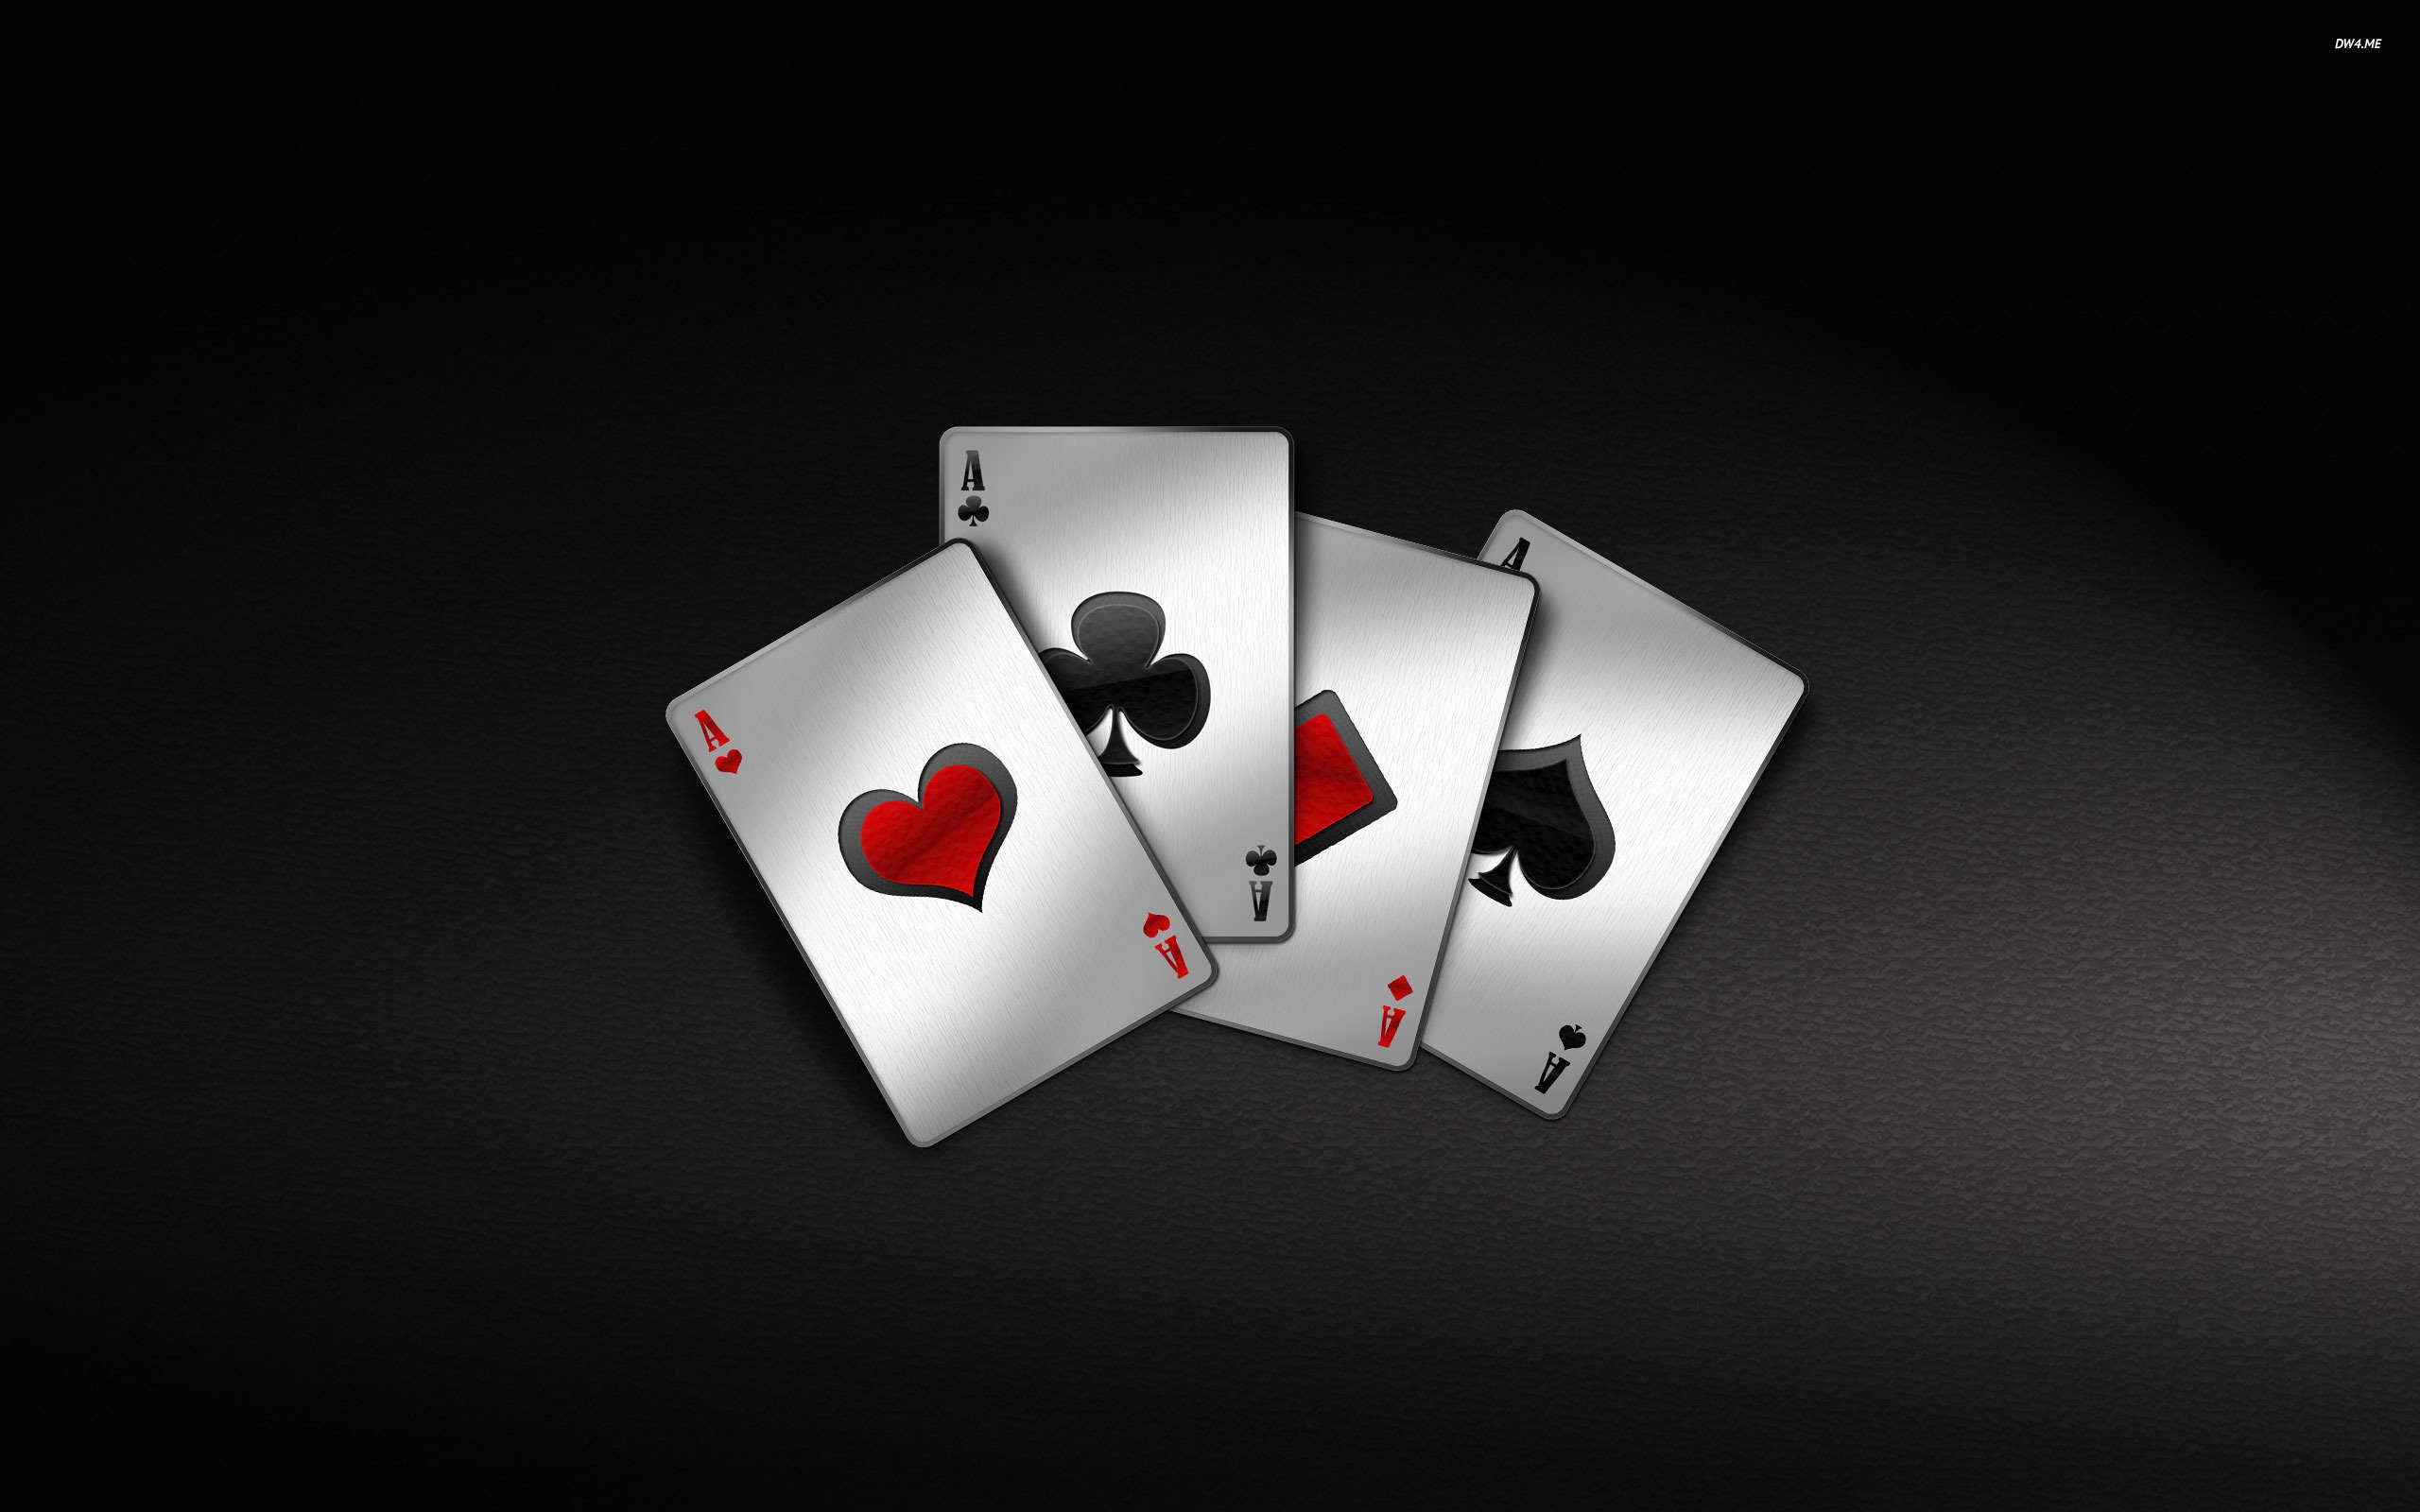 Playing Cards Wallpaper 1920x1080